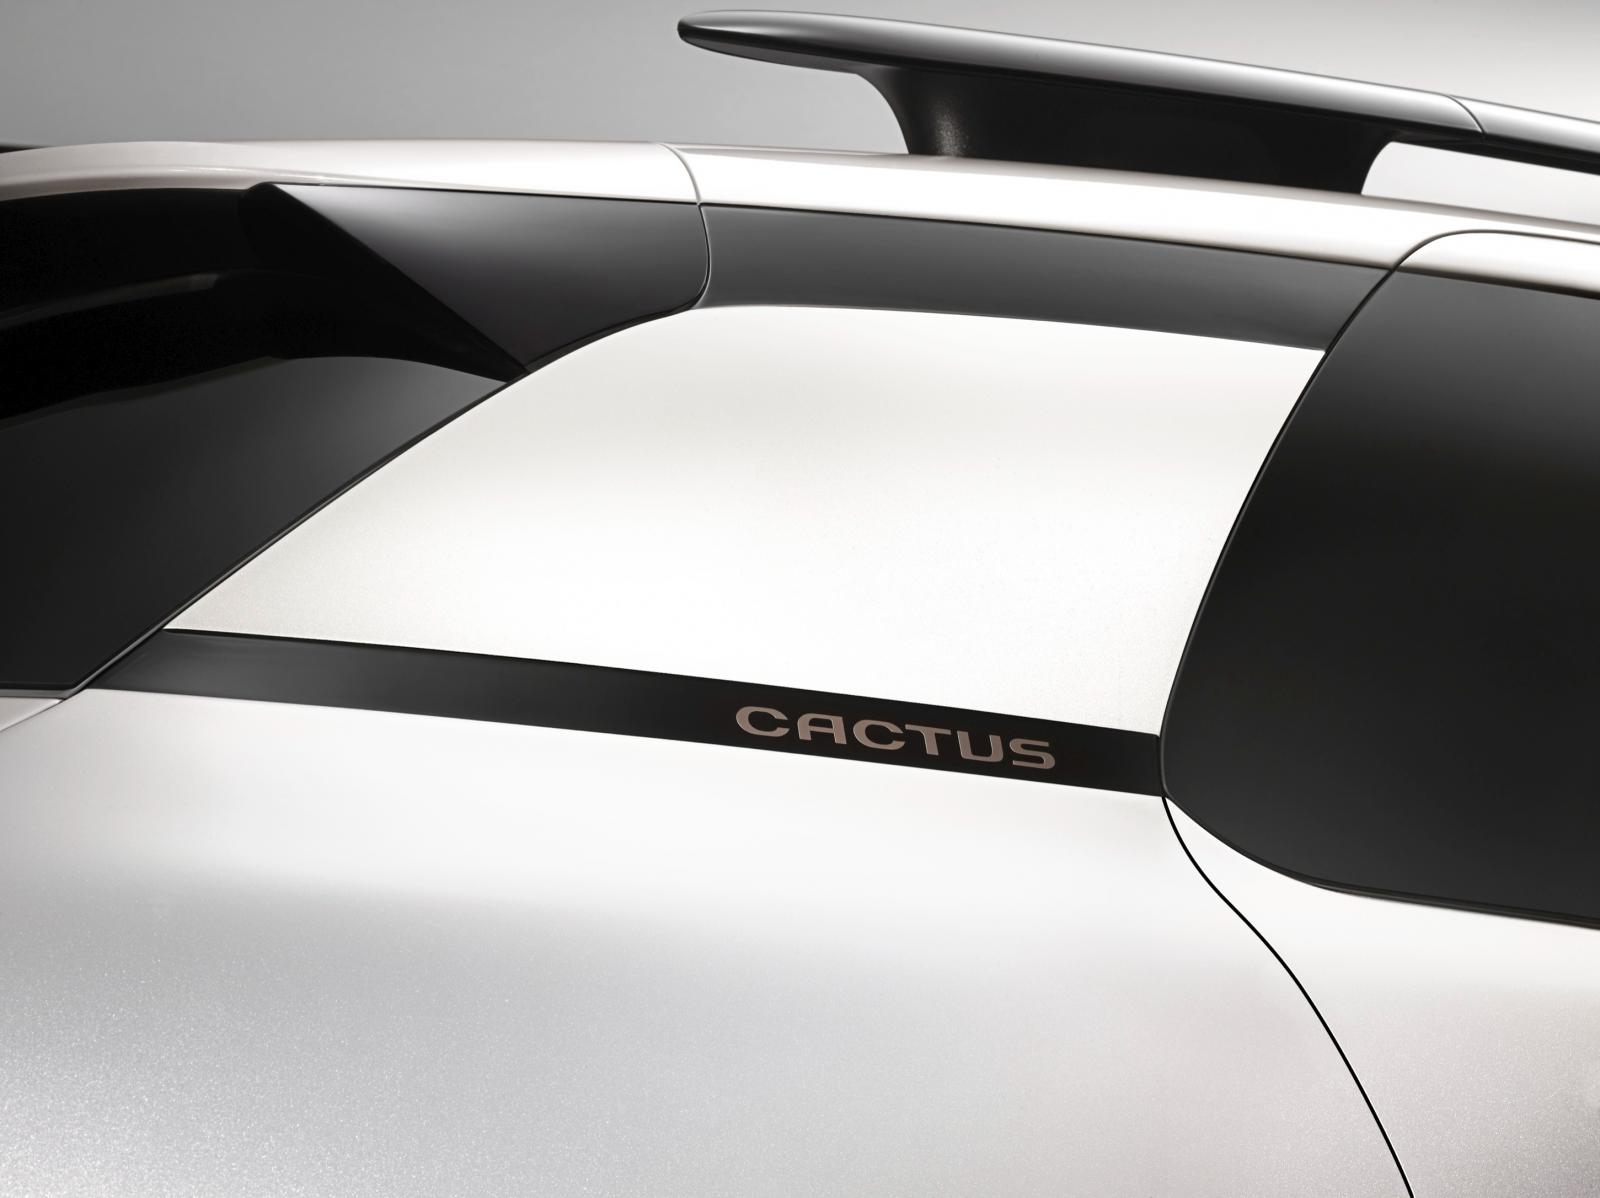 C4 Cactus Shine edition 2014 rear quarter panel logo